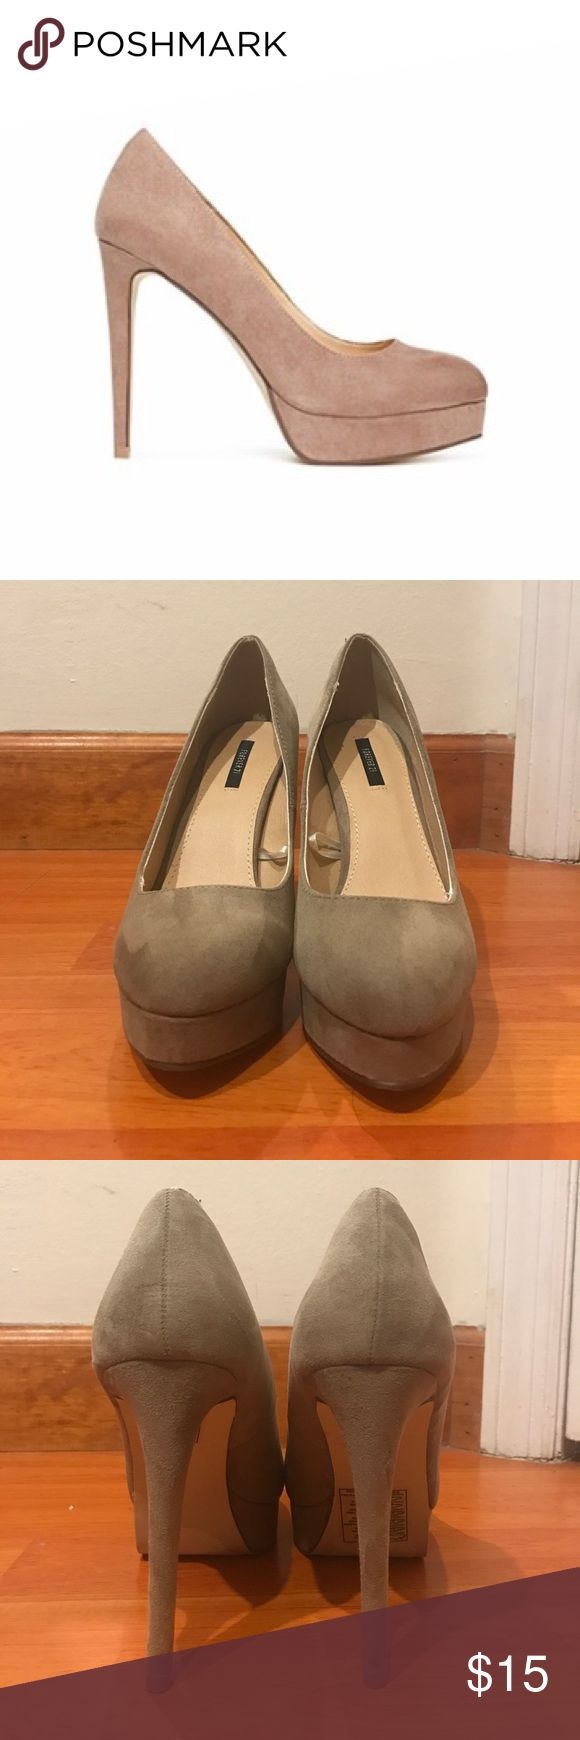 Faux Suede Platforms Pumps Never used Forever 21 Faux Suede Platform Pumps Forever 21 Shoes Platforms